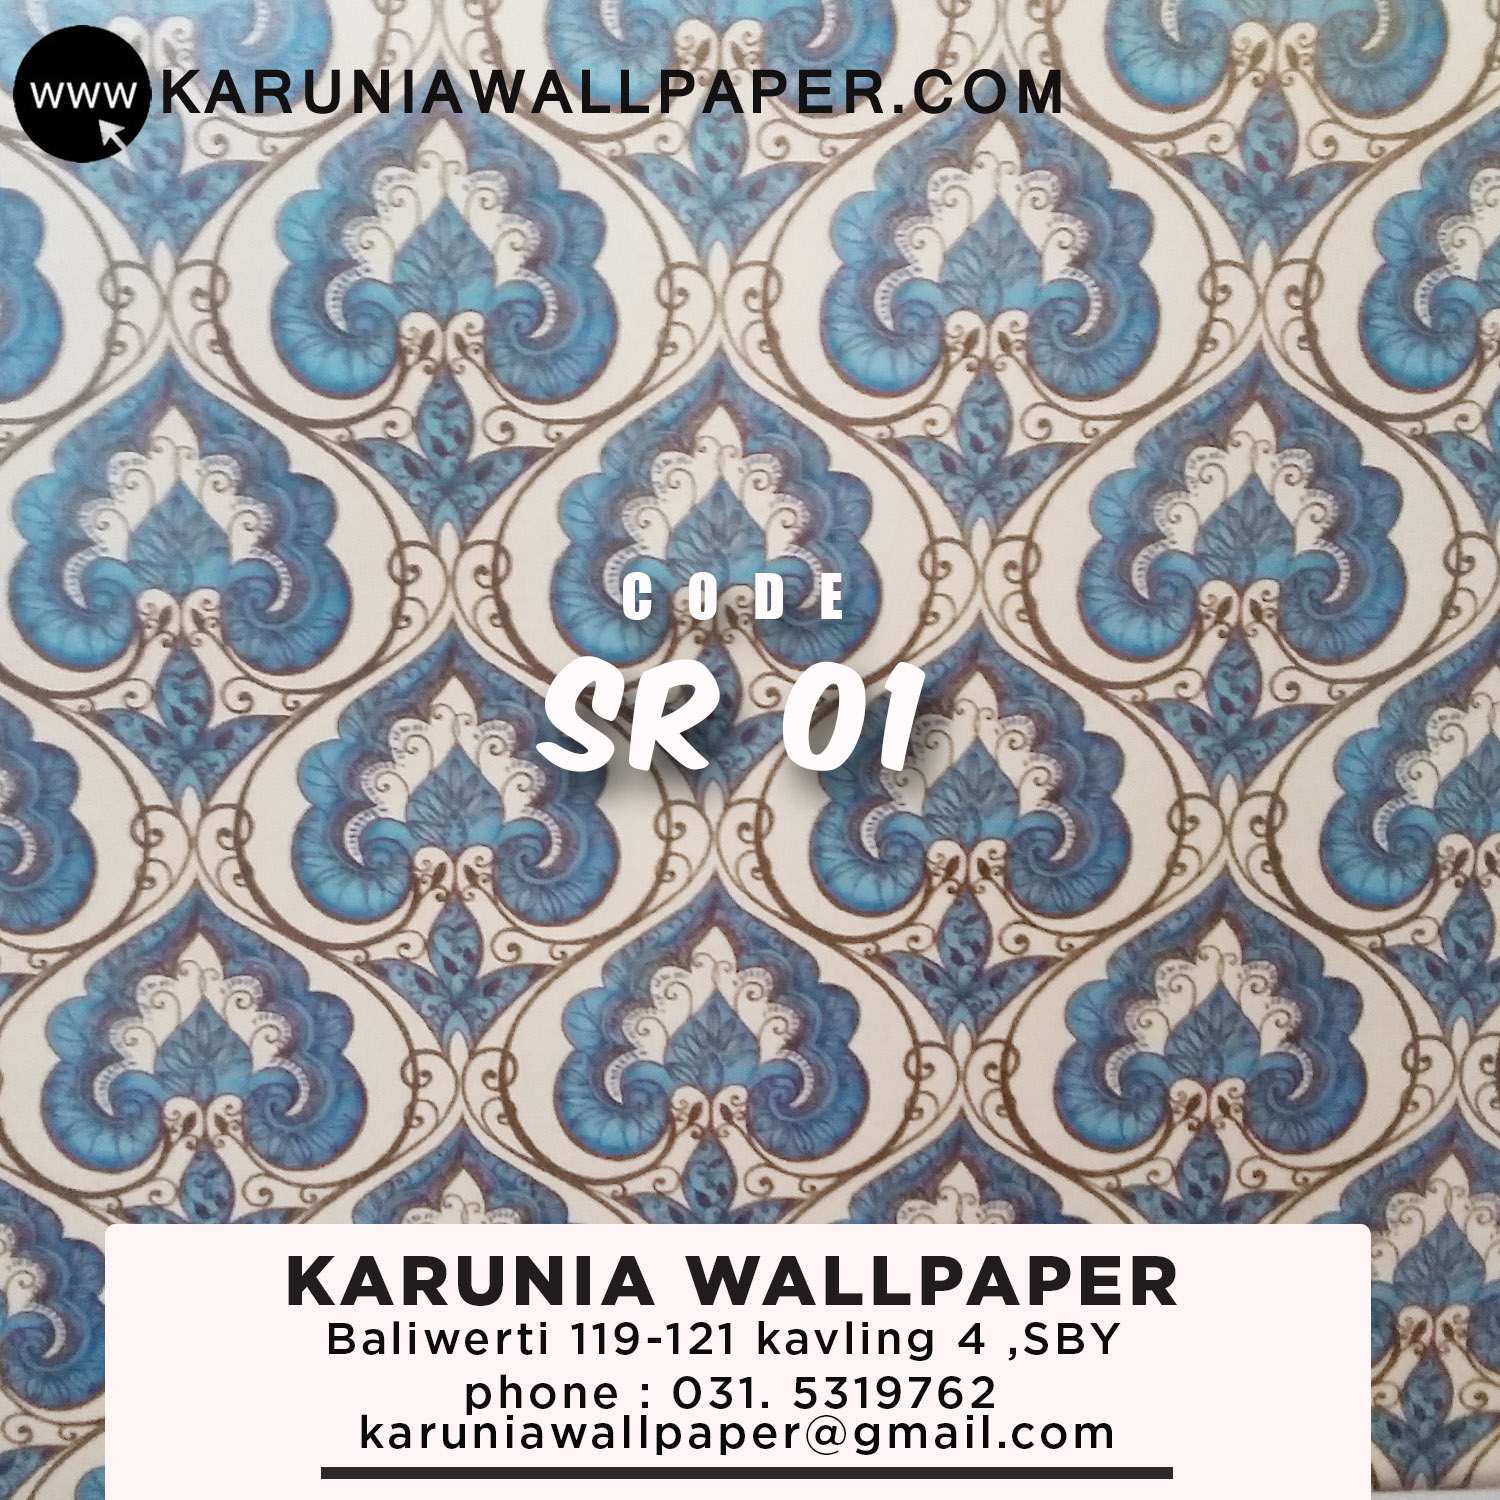 wallpaper dinding surabaya karuniawallpaper